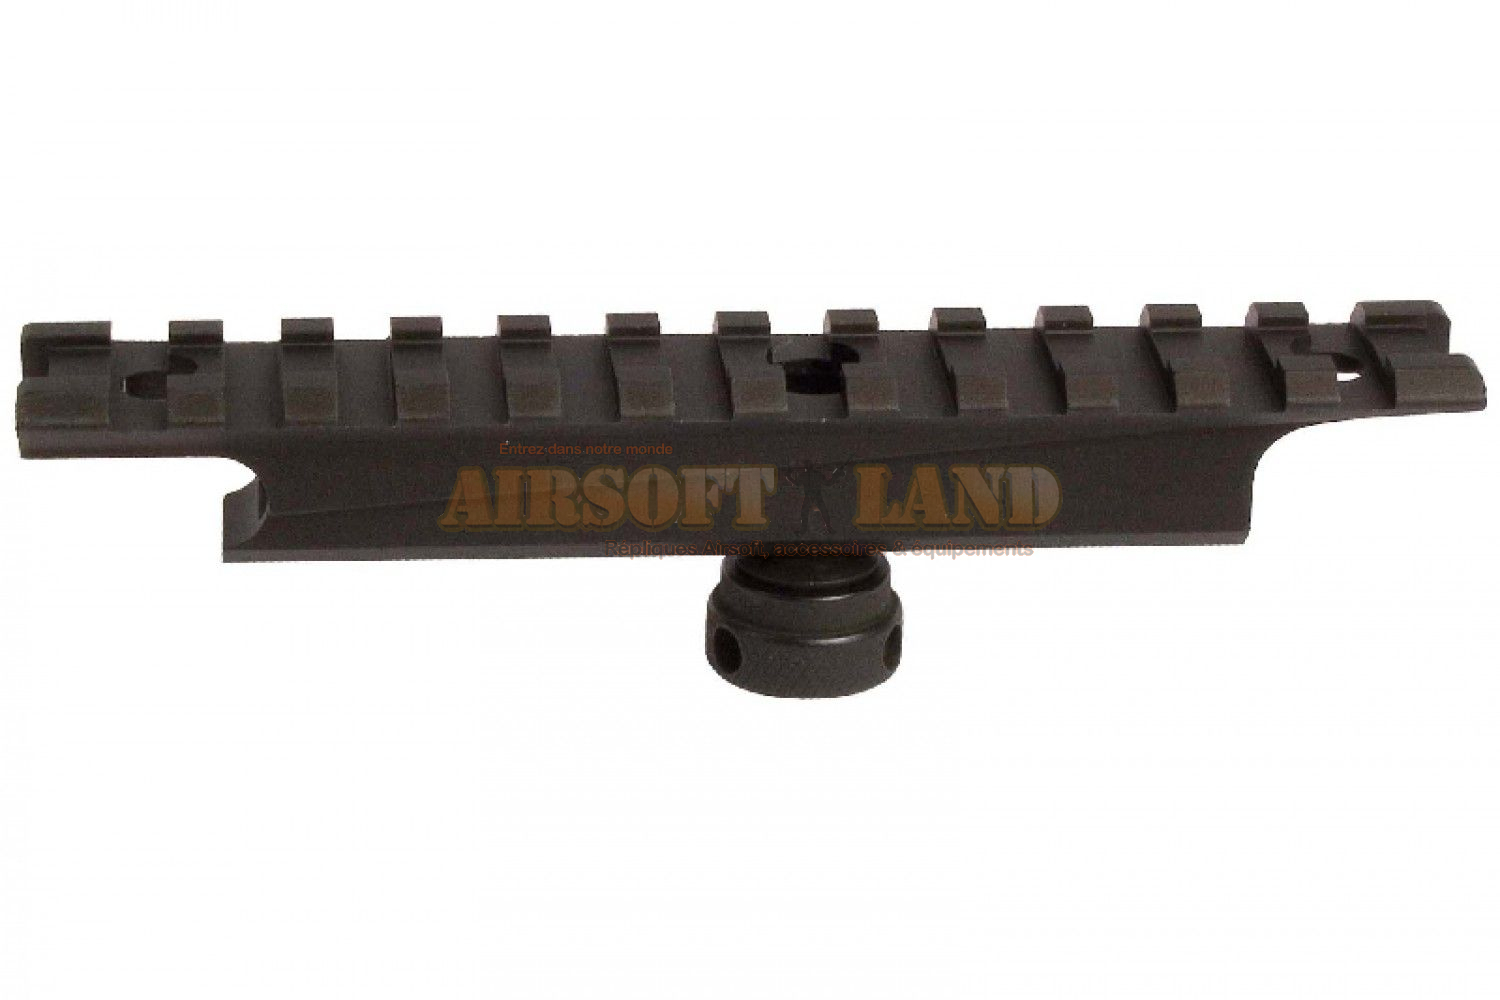 Rail WEAVER carry handle M16/M4/AR15